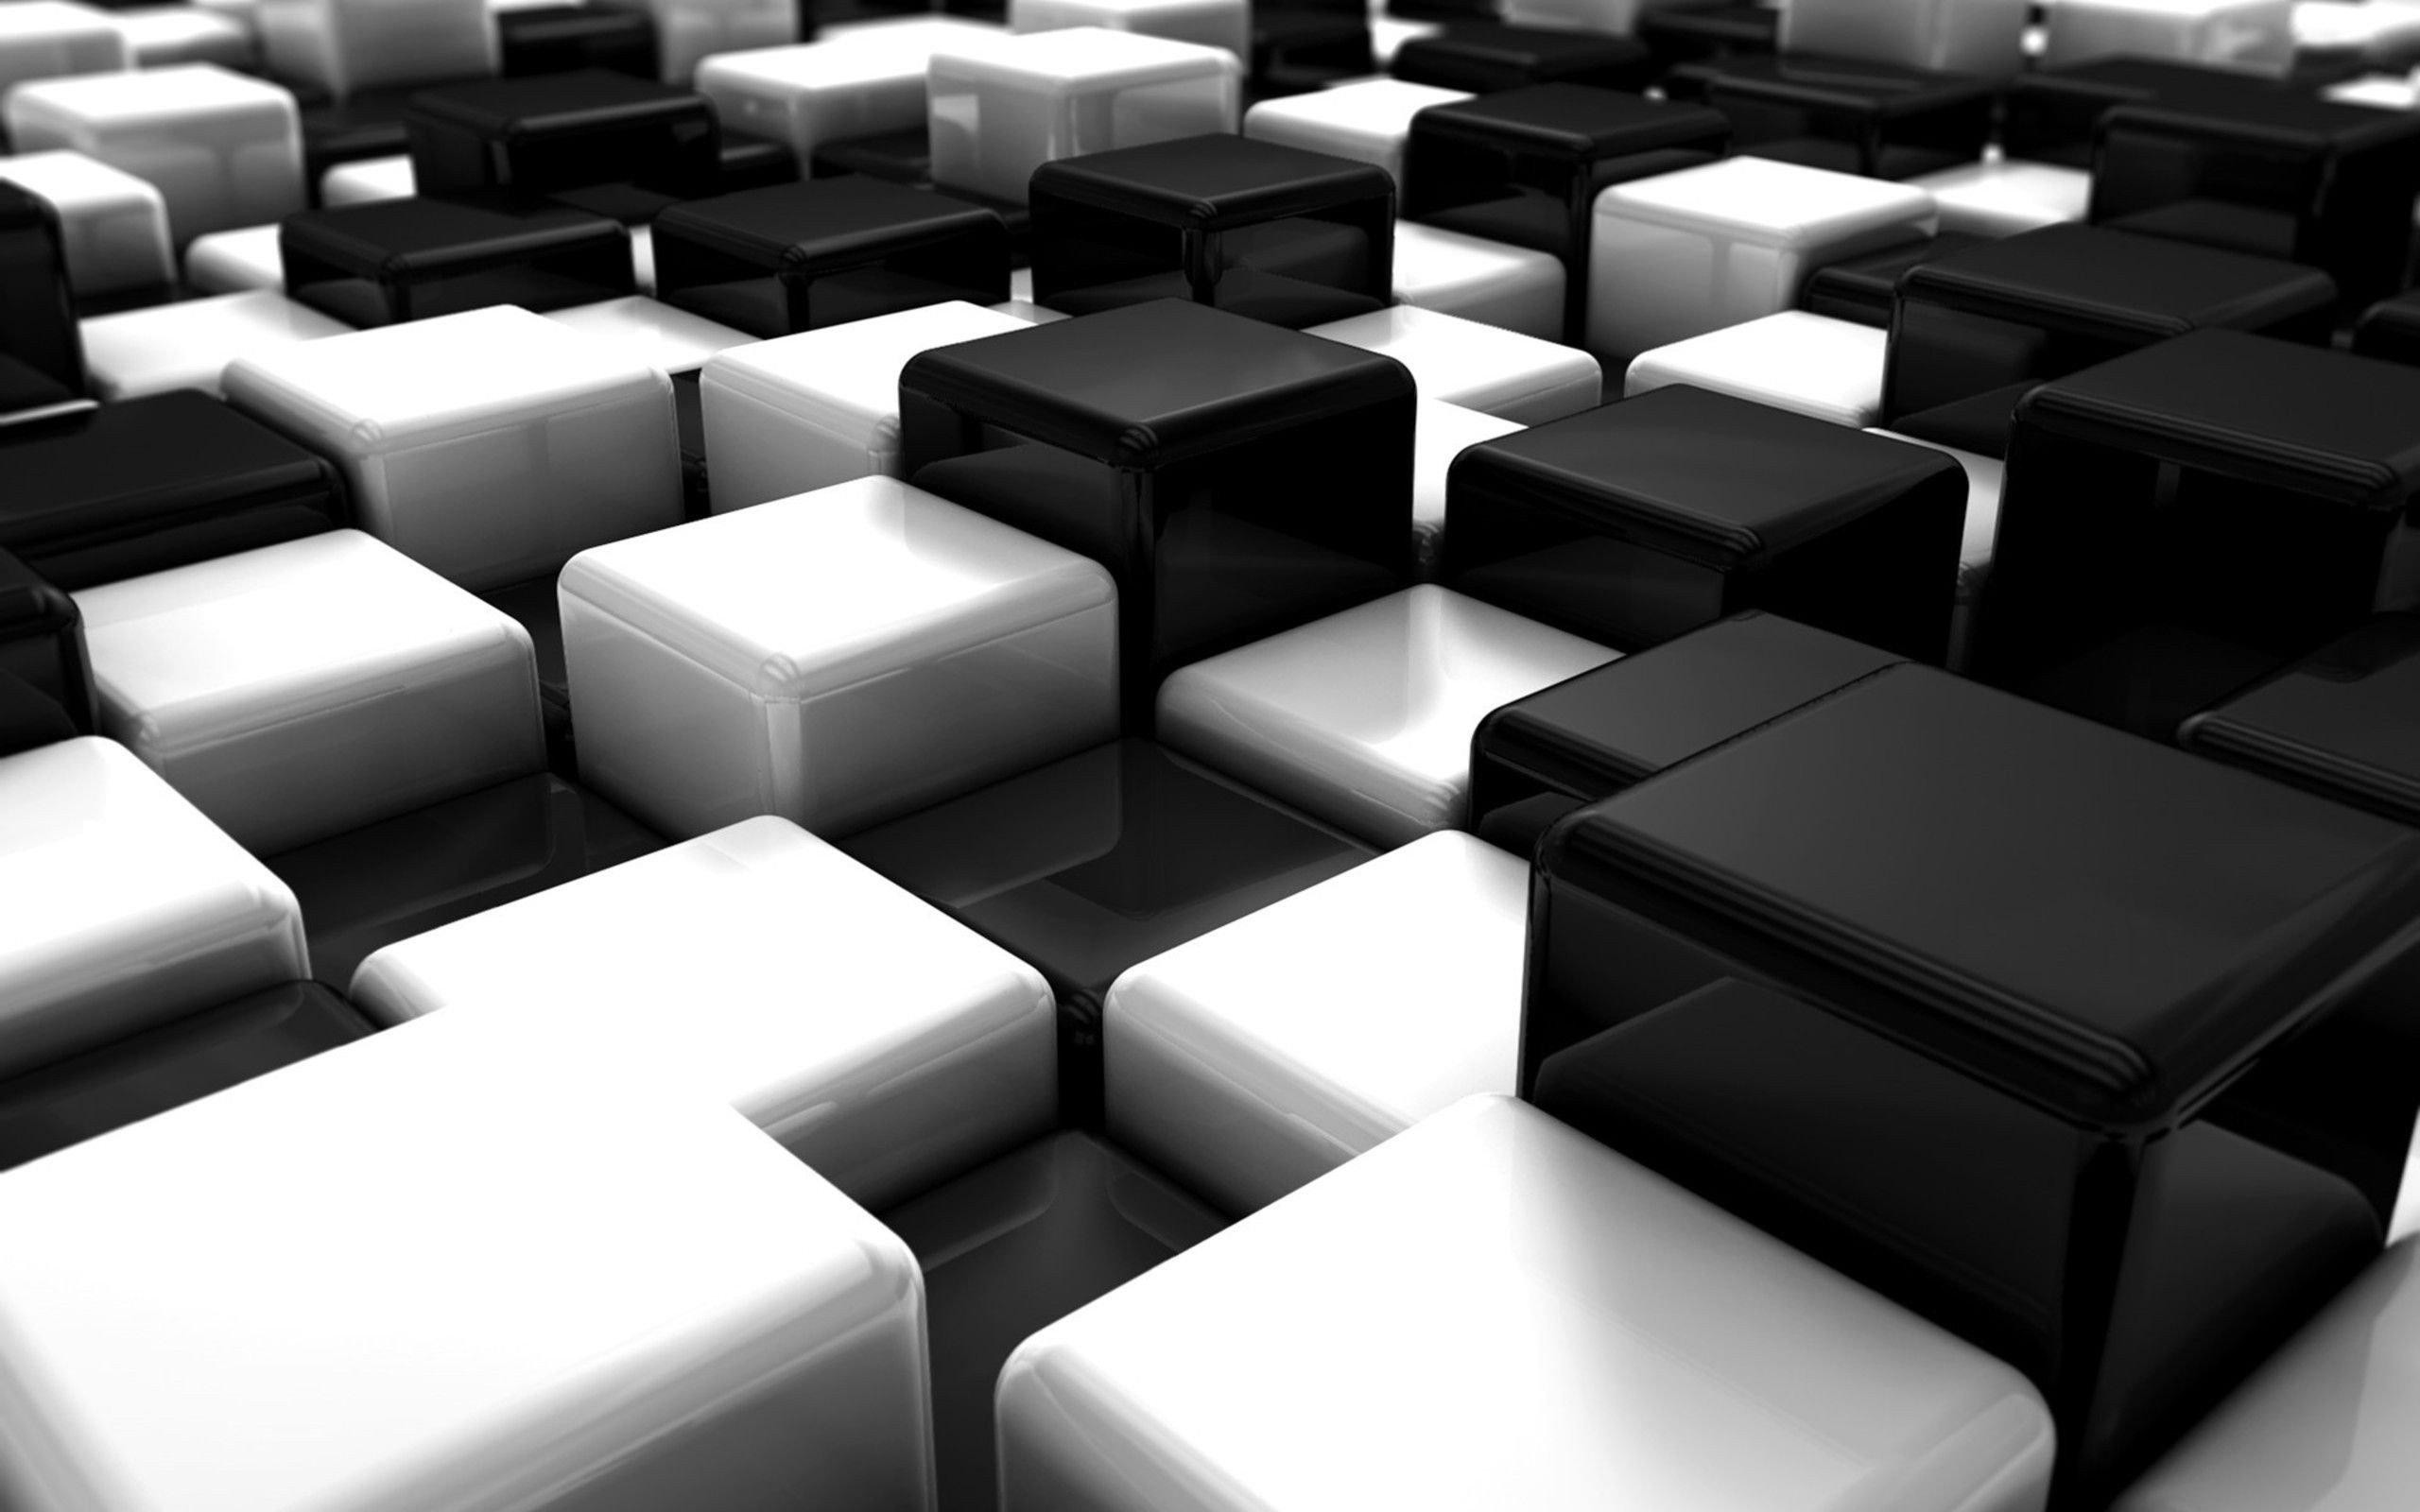 2560x1600 awesome abstract black white blocks cubes digital art hd resolution  wallpaper